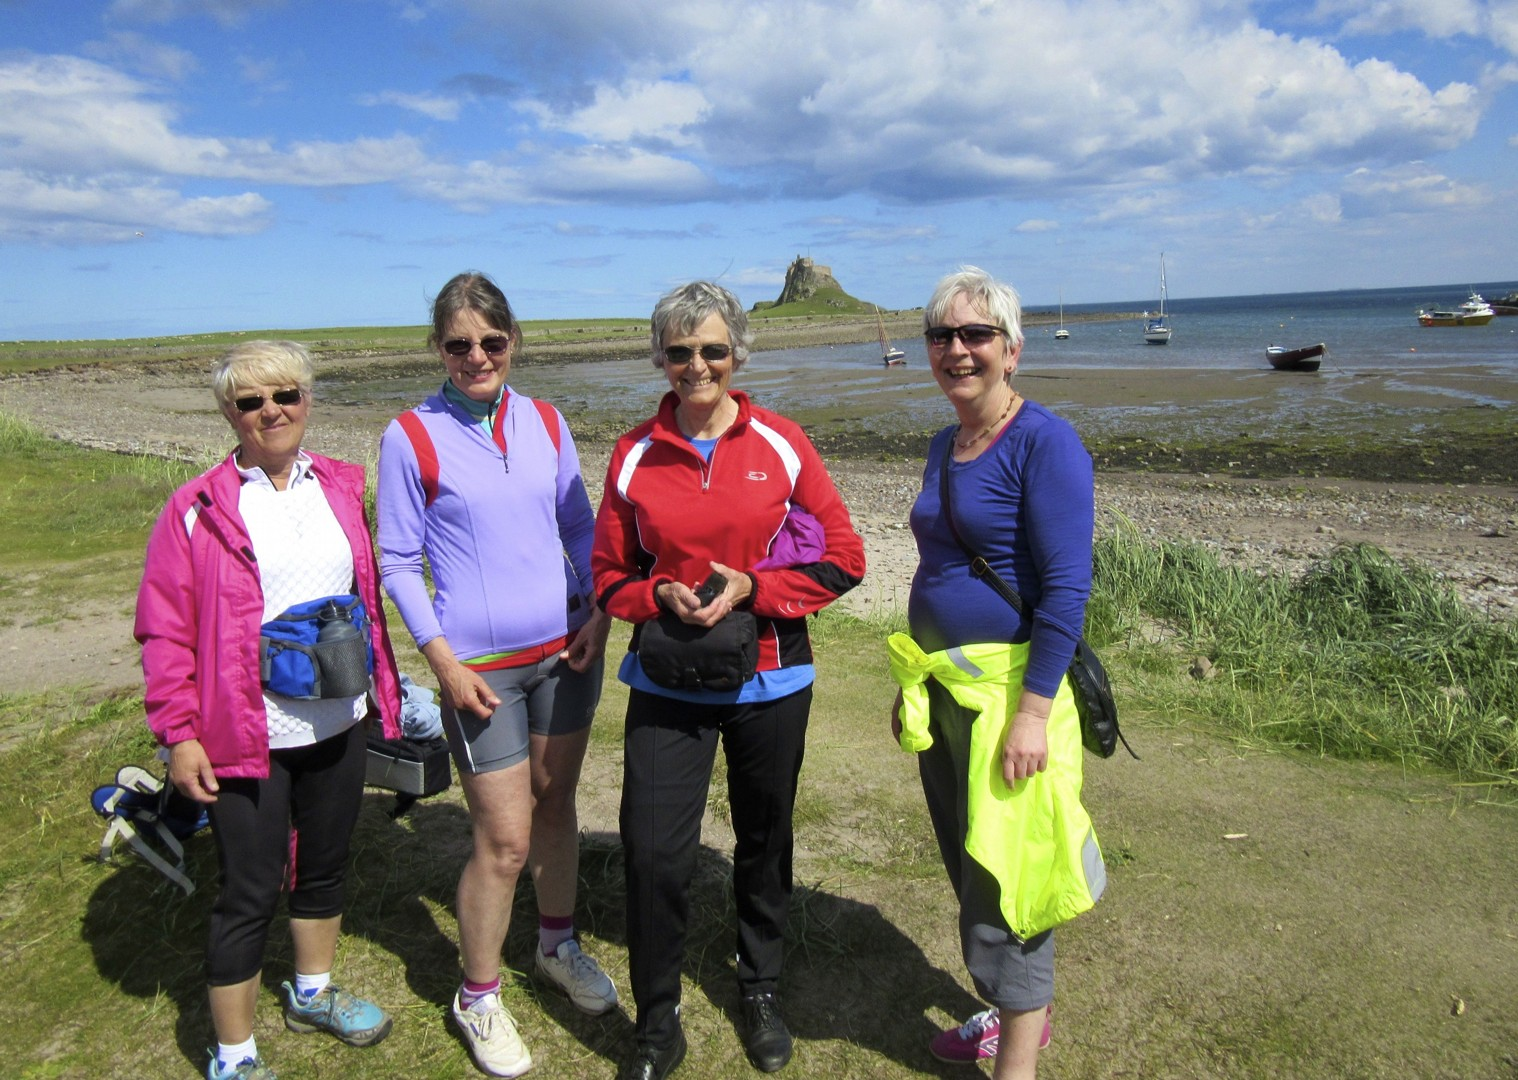 leisure-cycling-holiday-northumberland-lindisfarne.jpg - UK - Northumberland - Alnmouth - Guided Leisure Cycling Holiday - Leisure Cycling